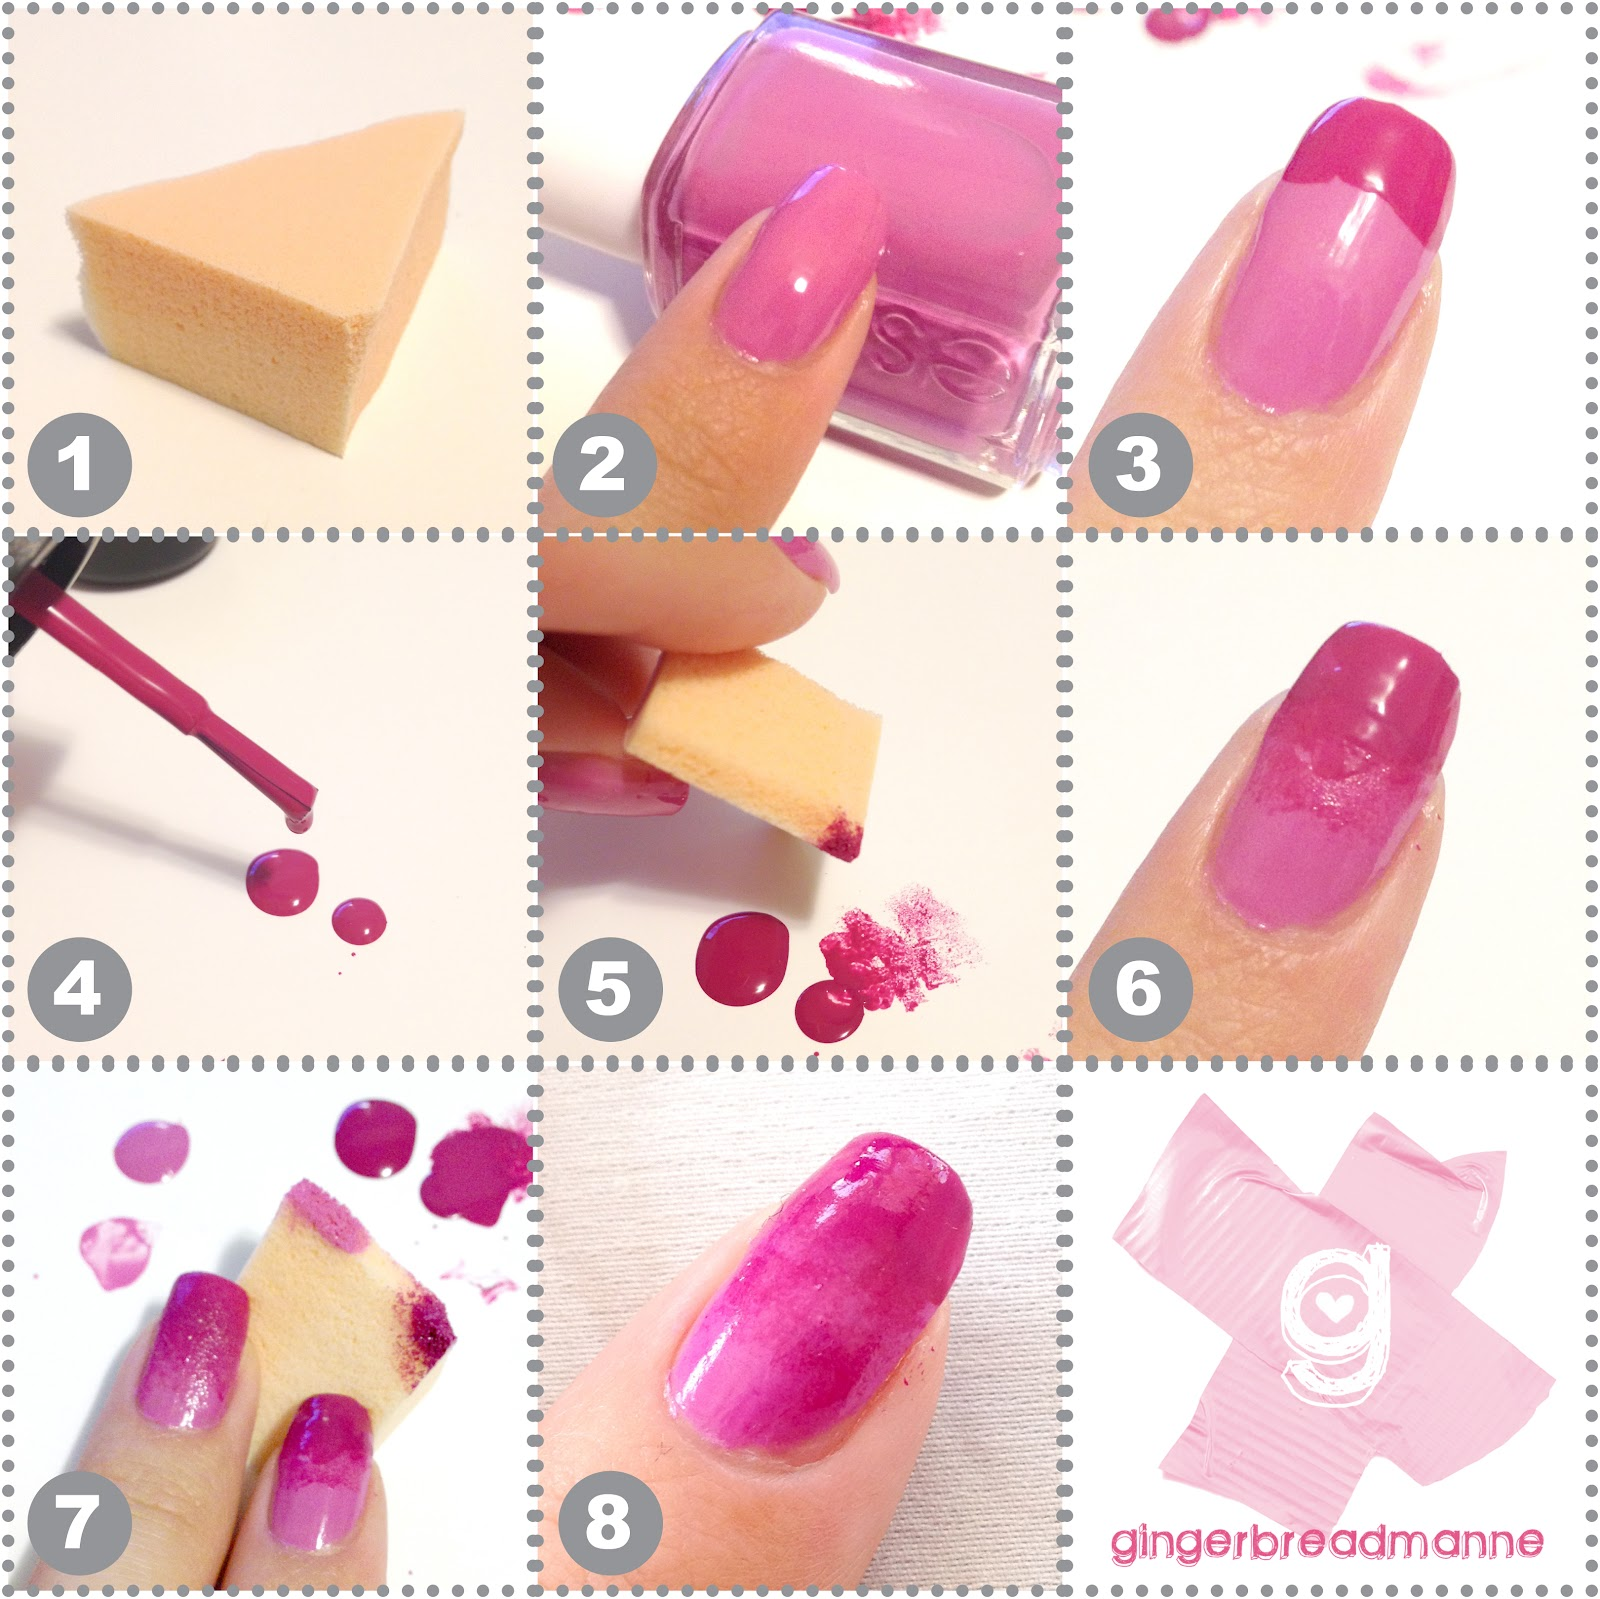 Gingerbreadmanne sponge nail art mini tutorial for gradient nails i like to cut up my make up sponge into smaller bits so im not wasting it im pretty sure that kitchen sponges would also be fine prinsesfo Image collections